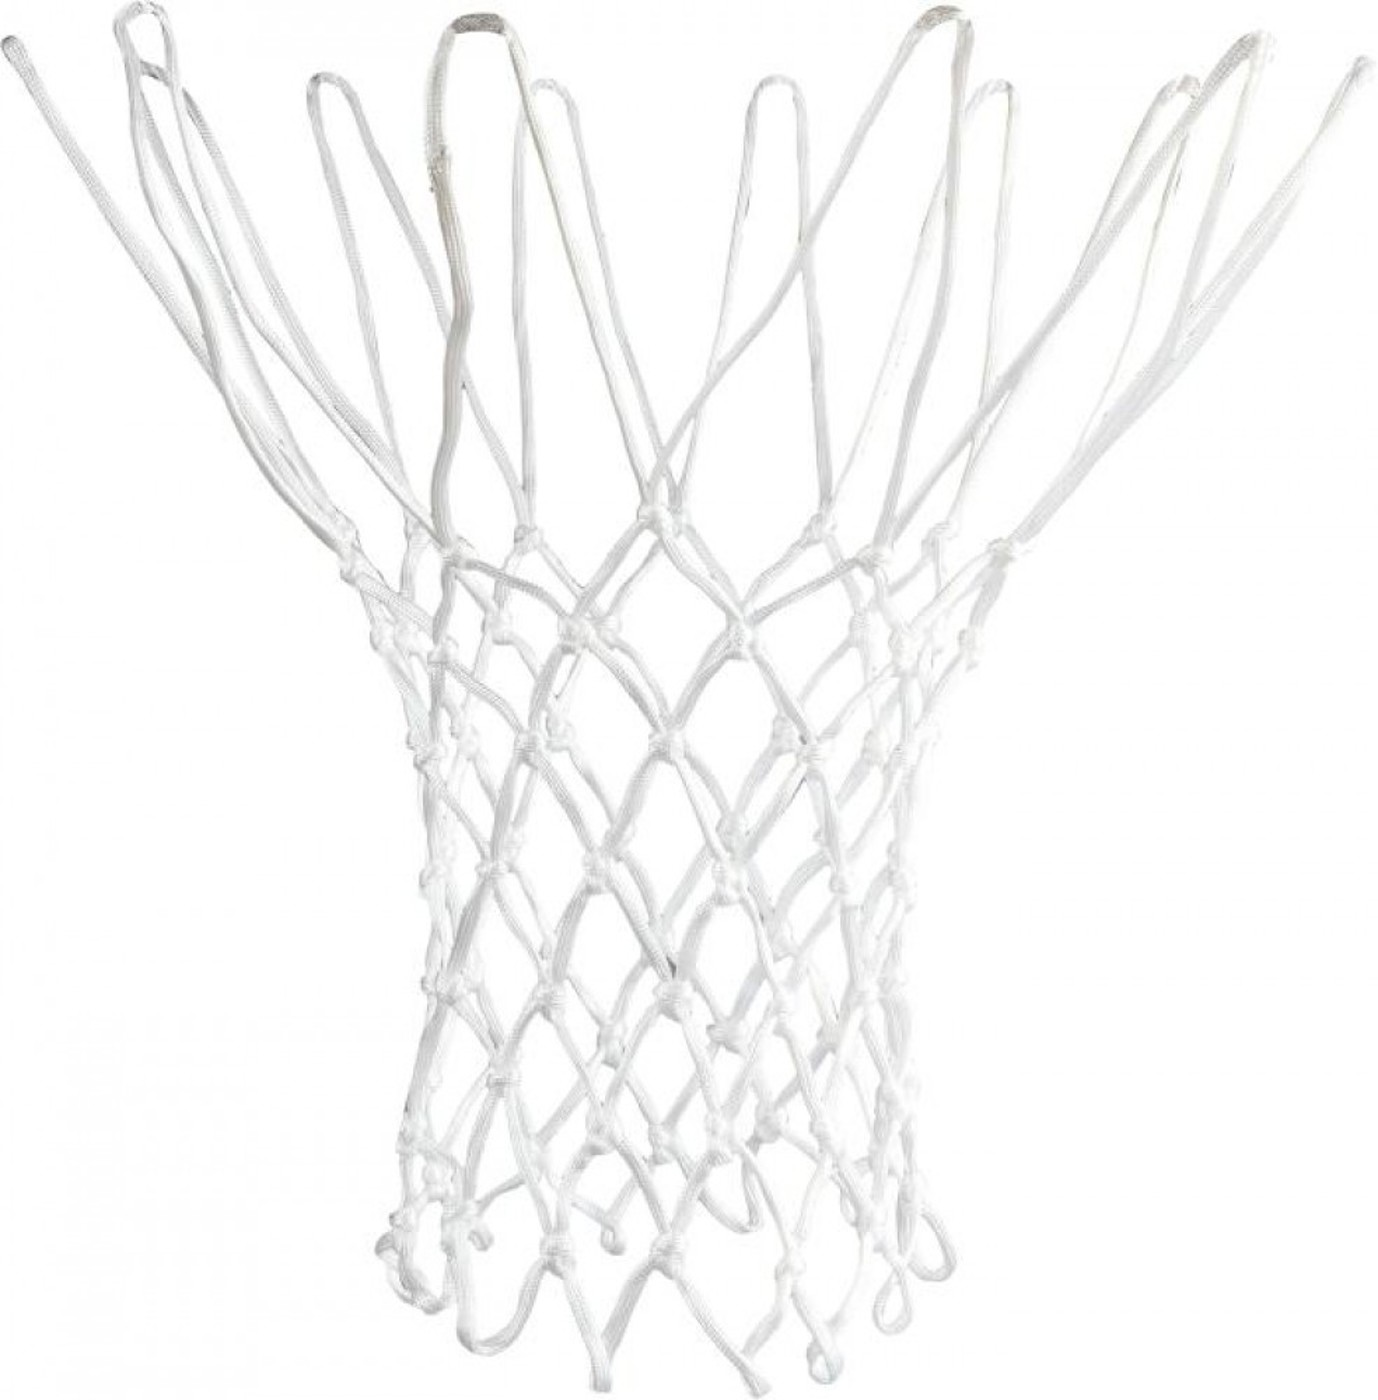 V3TEC NYLON BASKETBALL NET